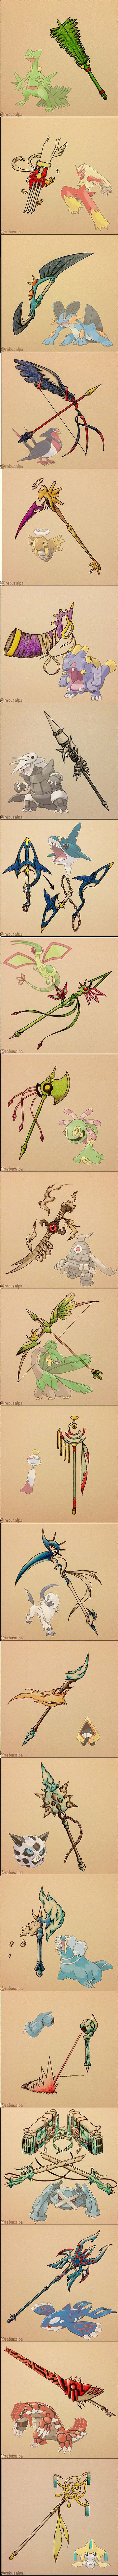 Various Pokemon as cool-ass weapons! Wish I could design stuff like these for GateKeeper! TwT I'm having problems with weapon/armor creation right now, and LoL dat 3DMetaGross, tho! XD